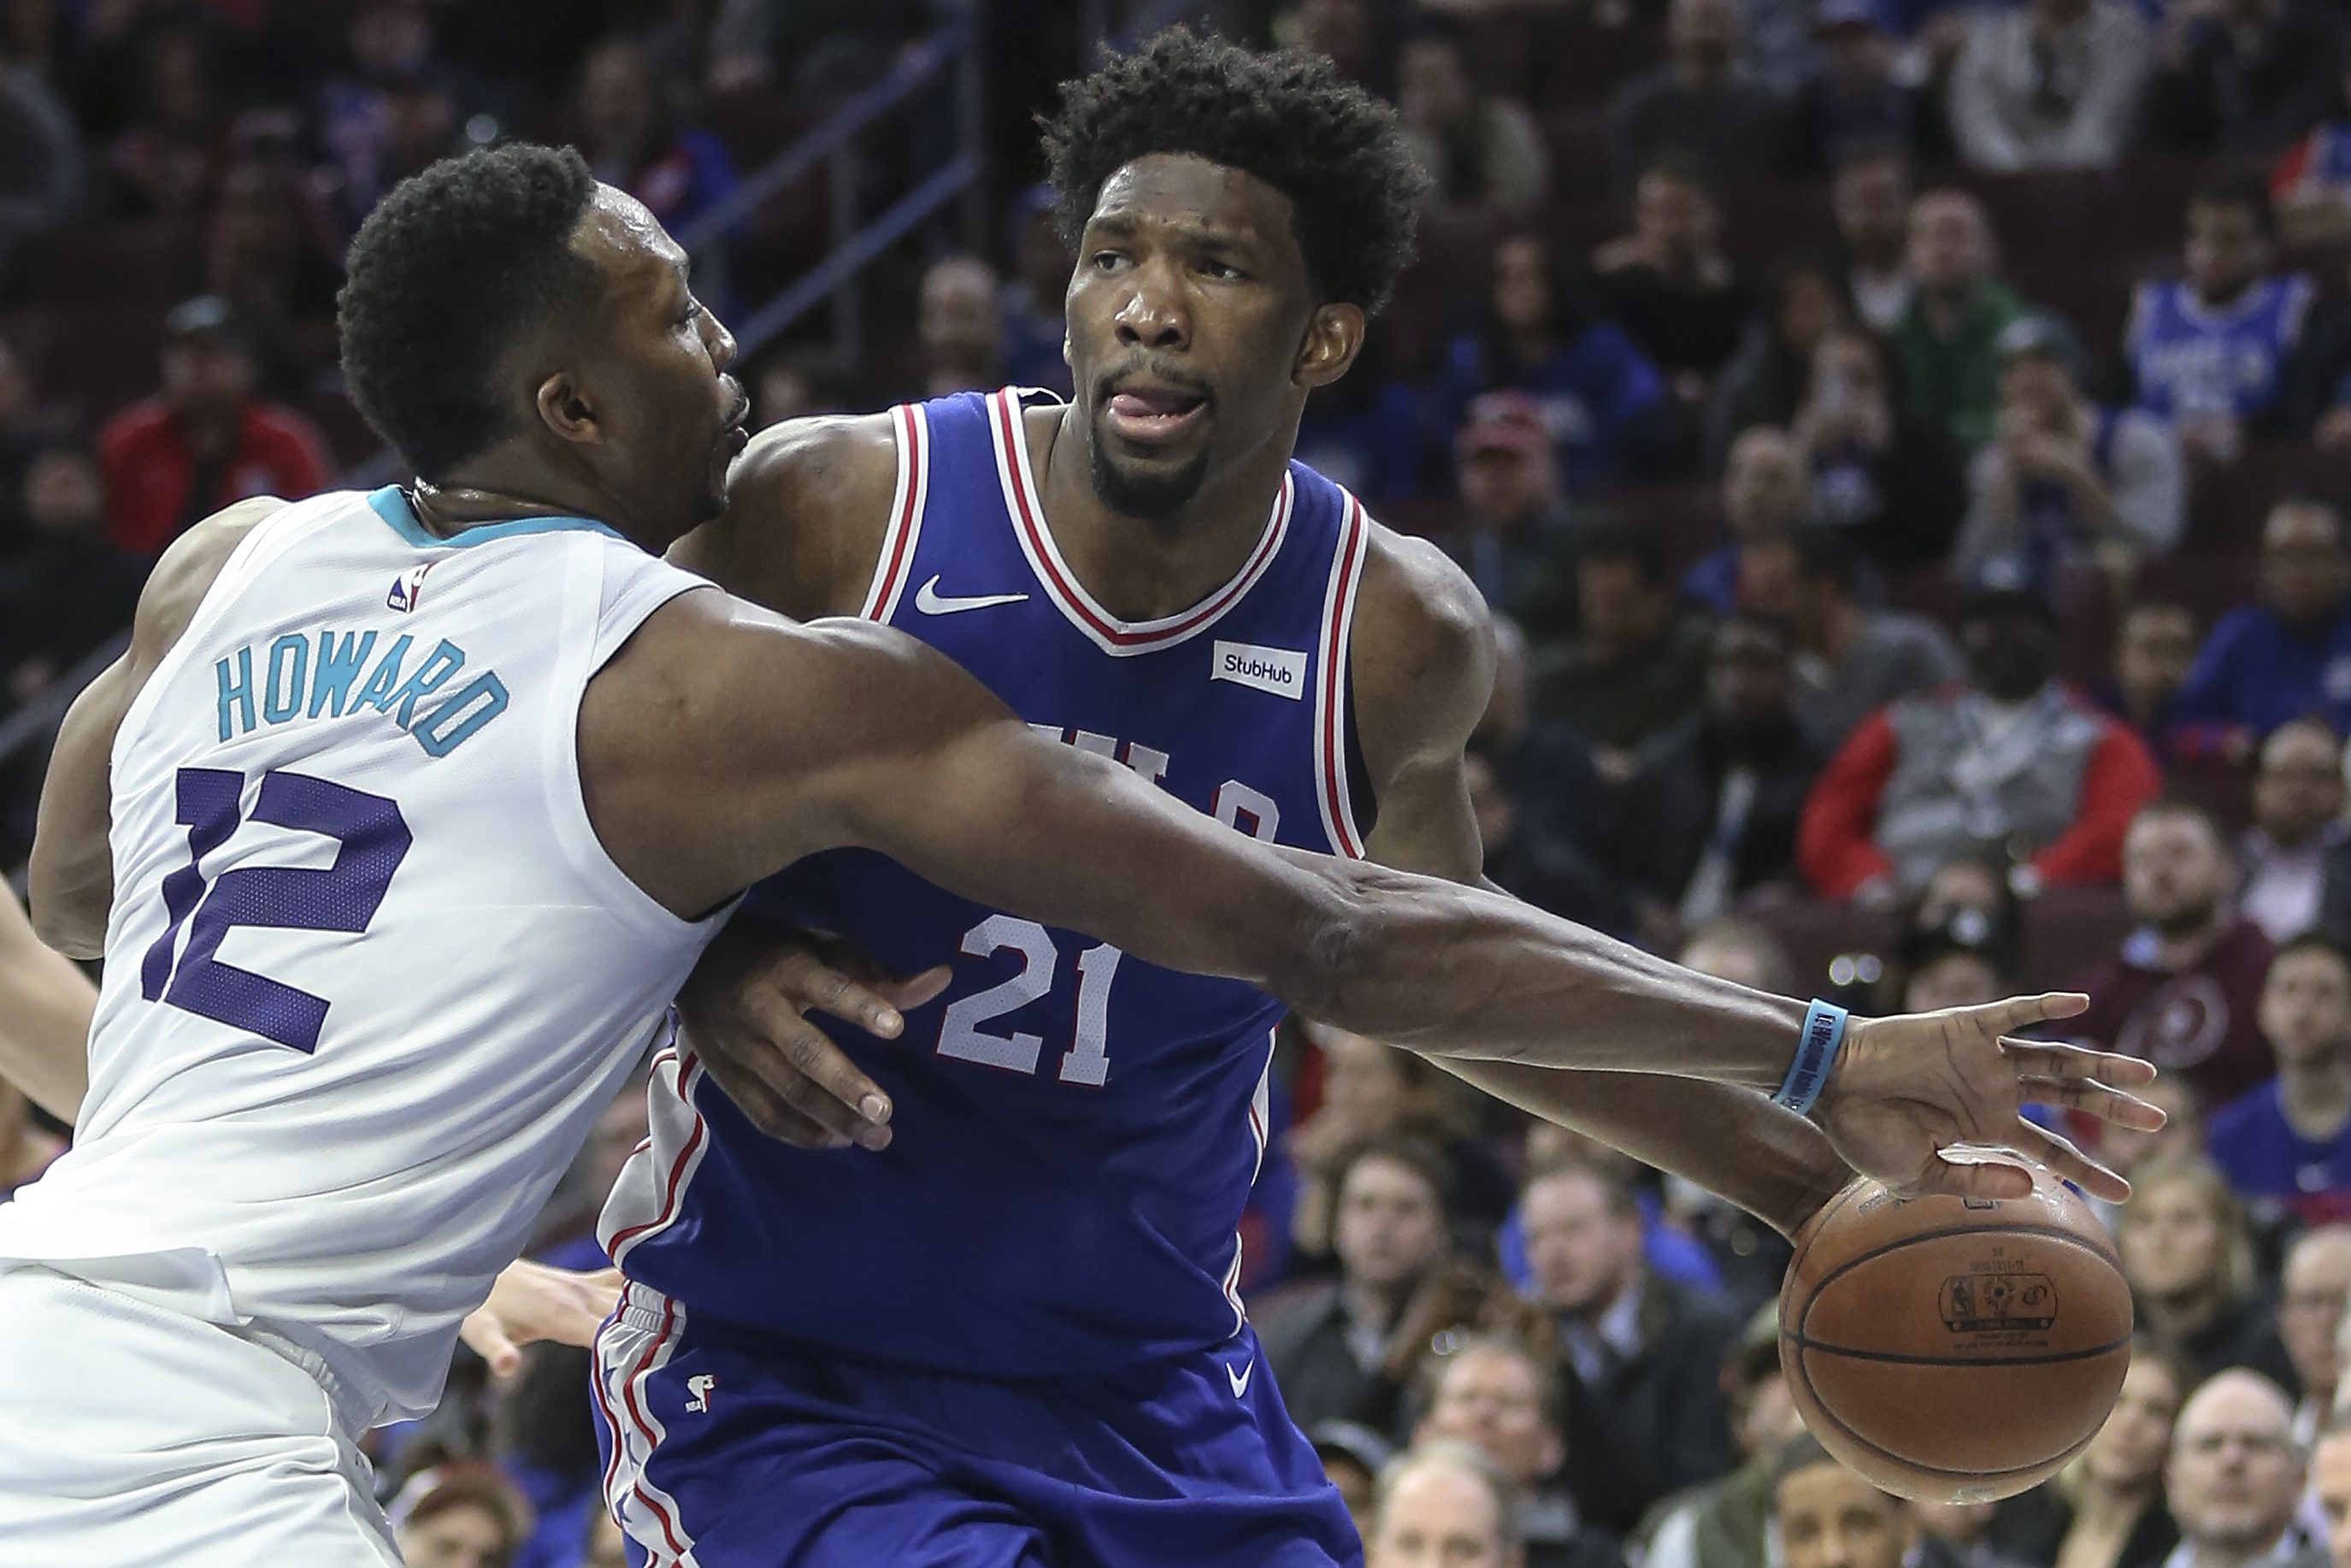 Joel Embiid keeps the ball from Dwight Howard of the Hornets during the third quarter.